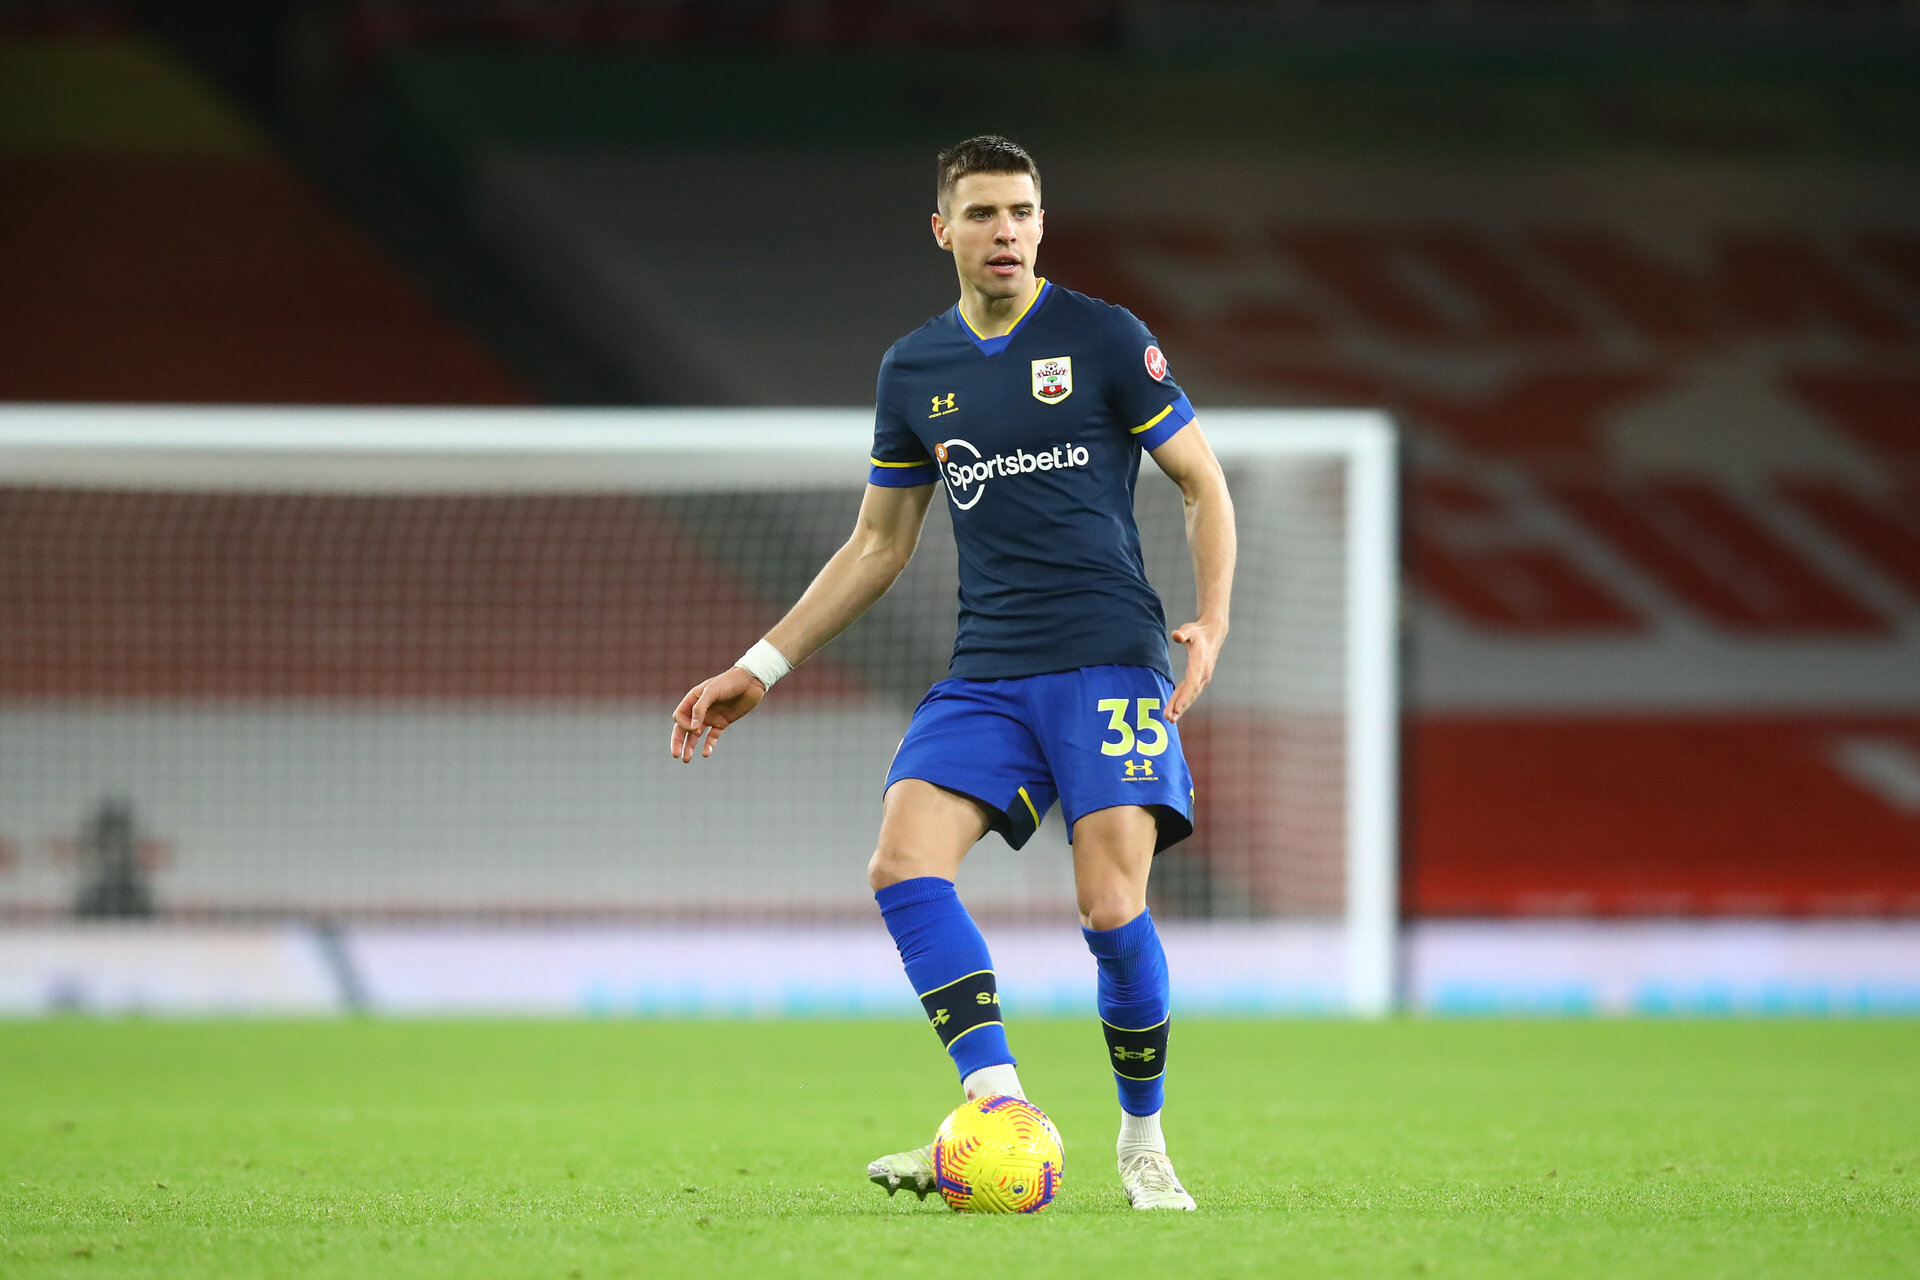 LONDON, ENGLAND - DECEMBER 16: Jan Bednarek of Southampton during the Premier League match between Arsenal and Southampton at Emirates Stadium on December 16, 2020 in London, England. The match will be played without fans, behind closed doors as a Covid-19 precaution. (Photo by Matt Watson/Southampton FC via Getty Images)